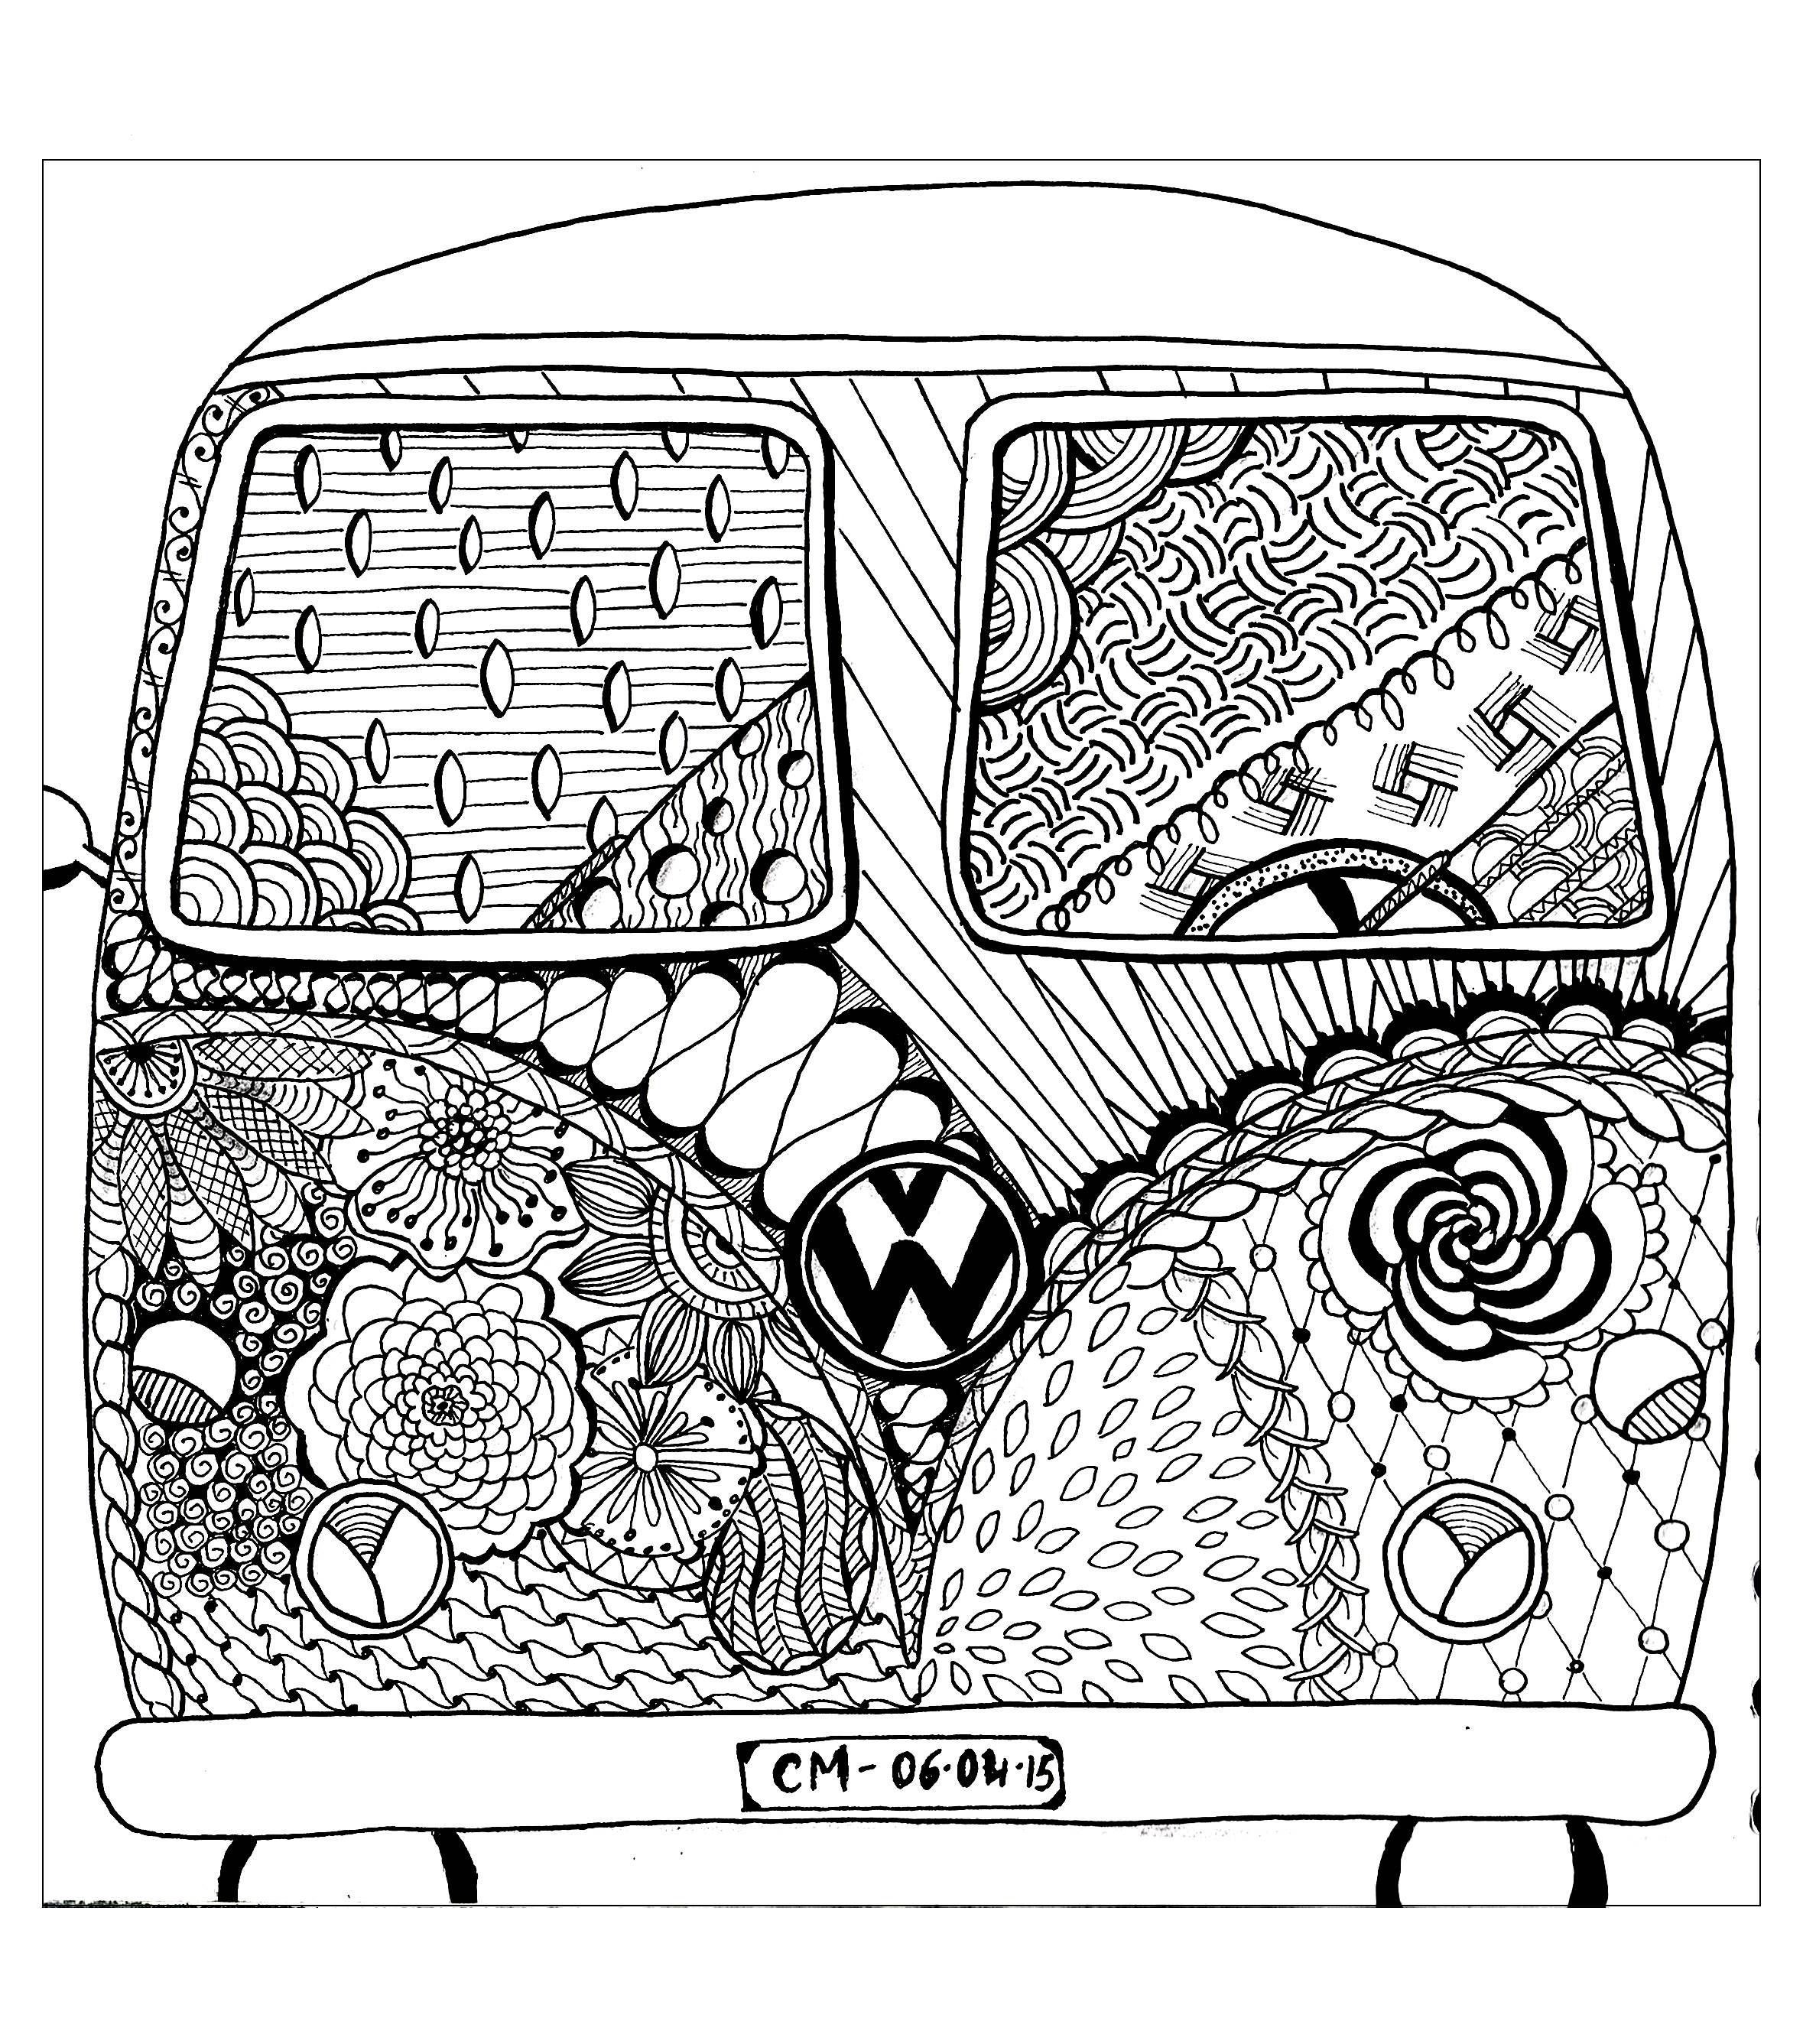 Disney zentangle coloring pages - Free Coloring Page Coloring Zentangle By Cathym 8 Hippie Camper